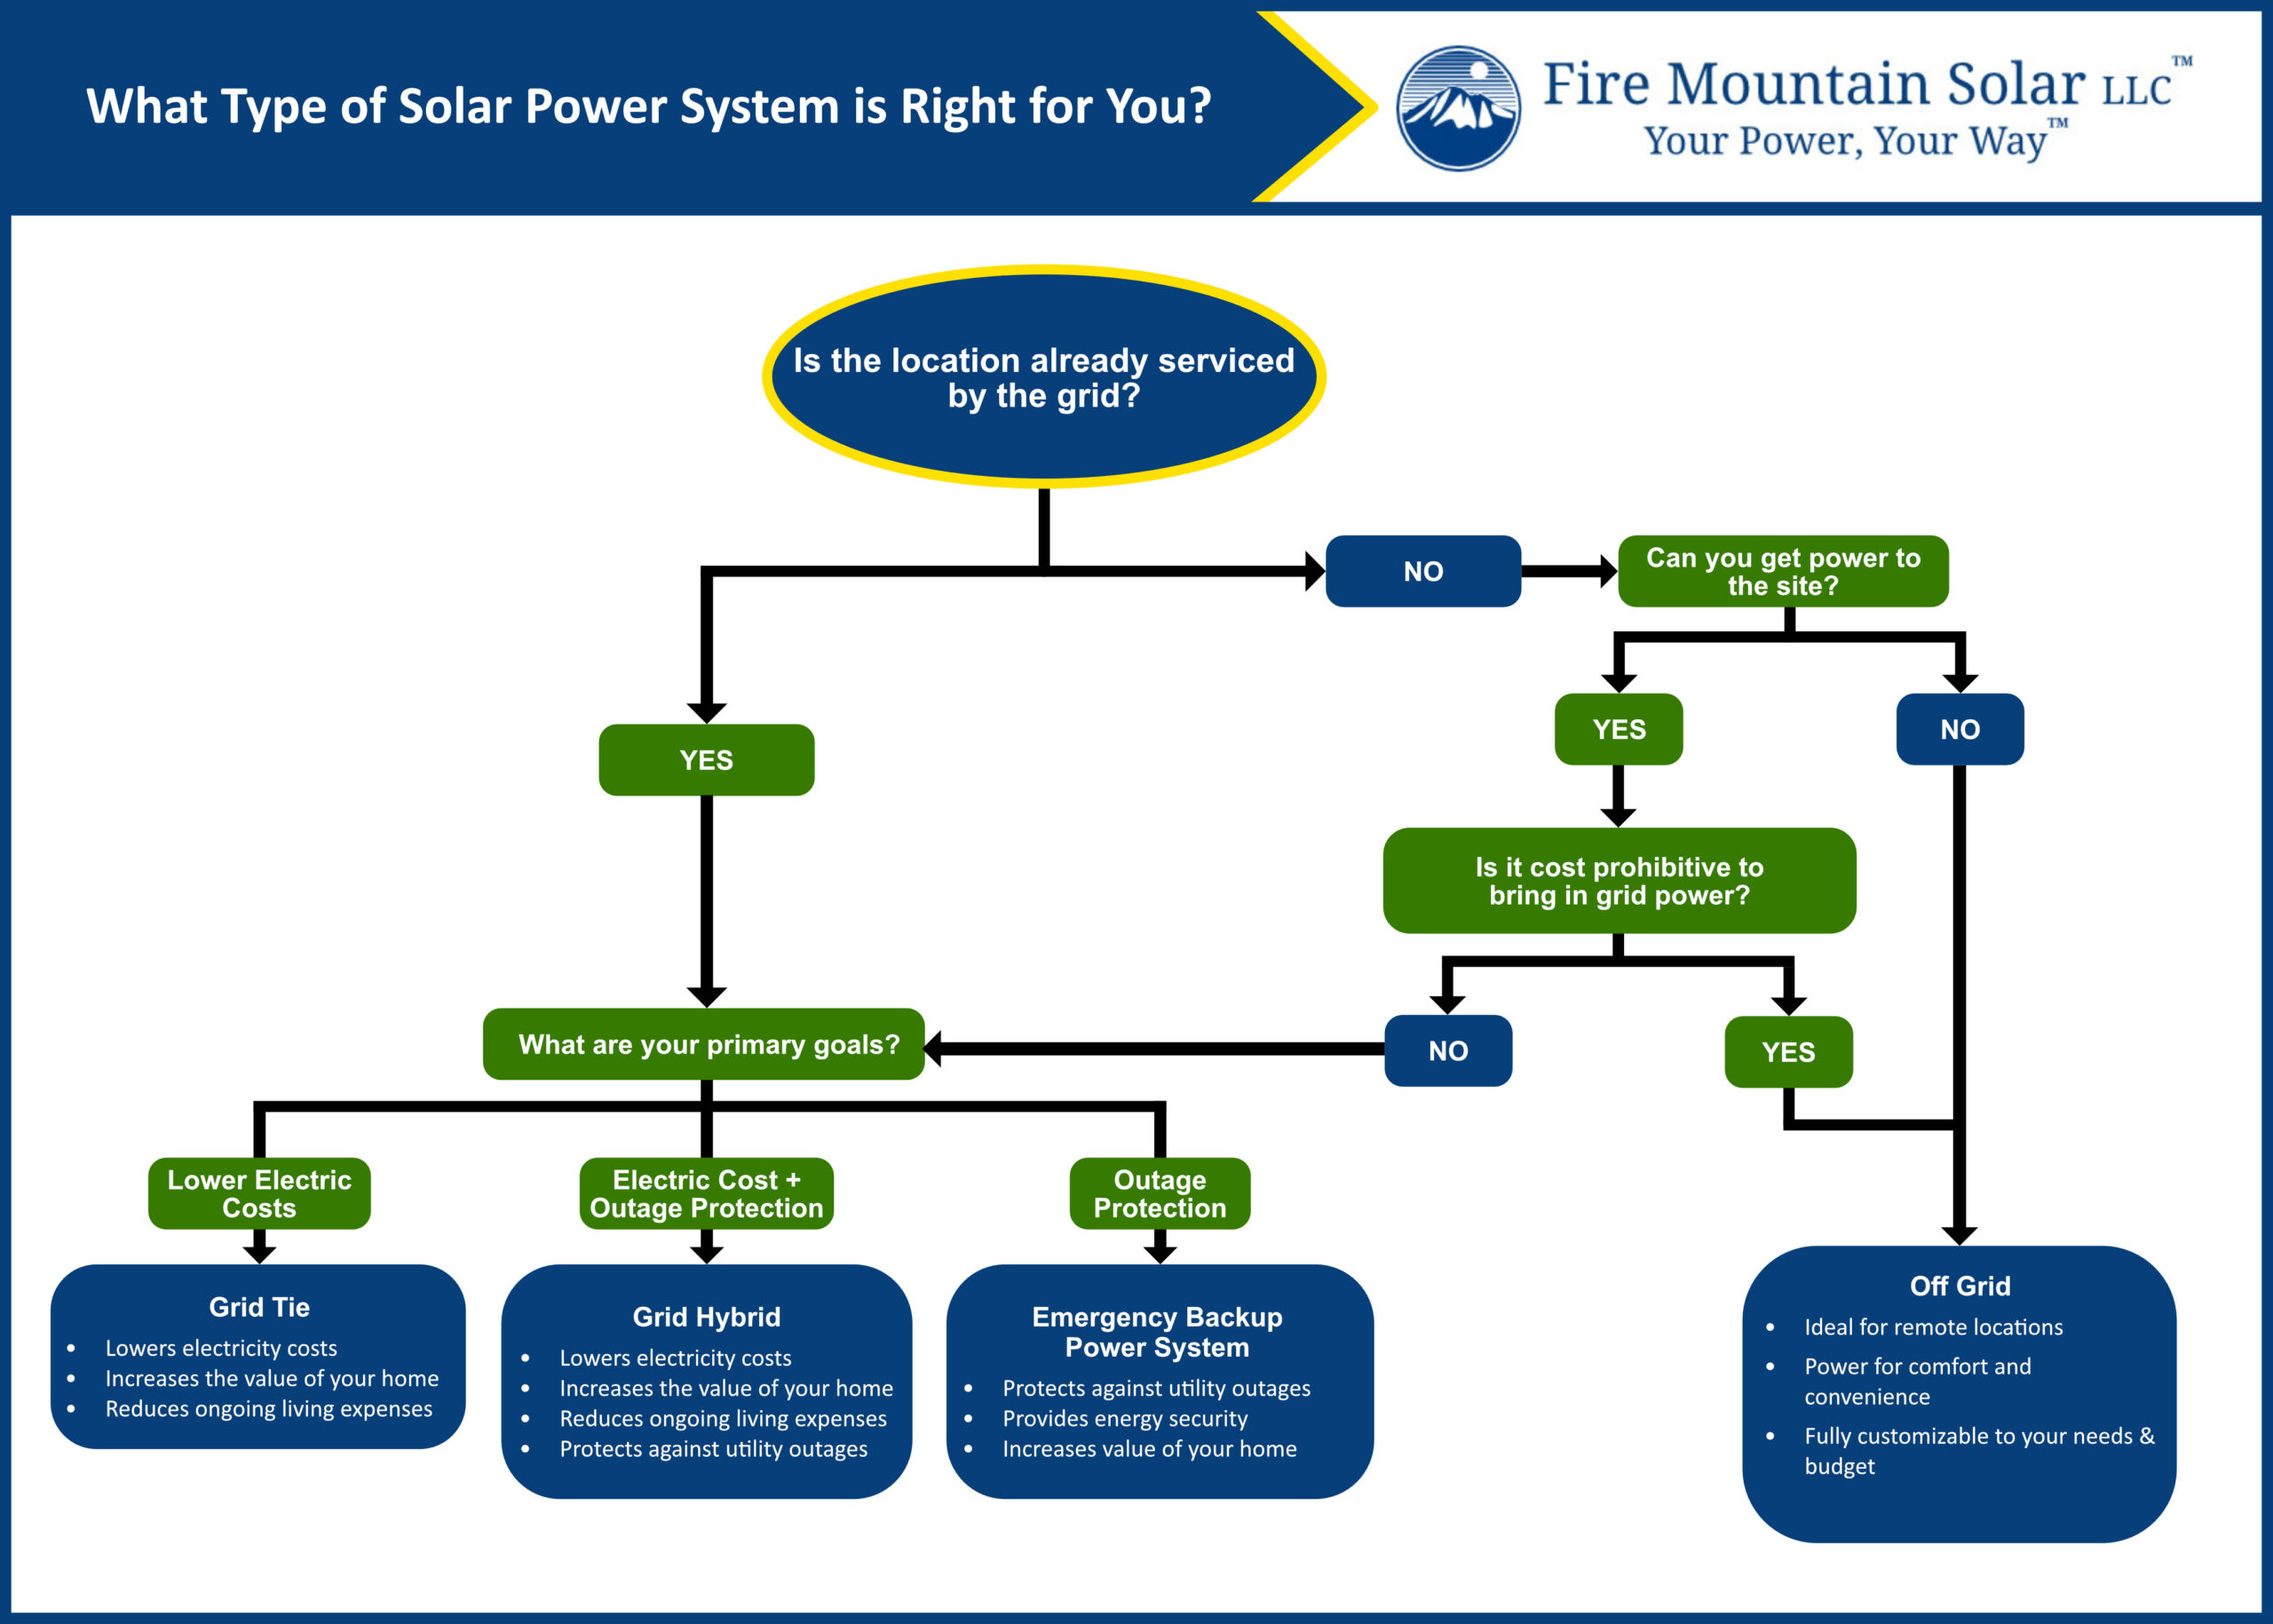 What Type of Solar Power System is Right for You?